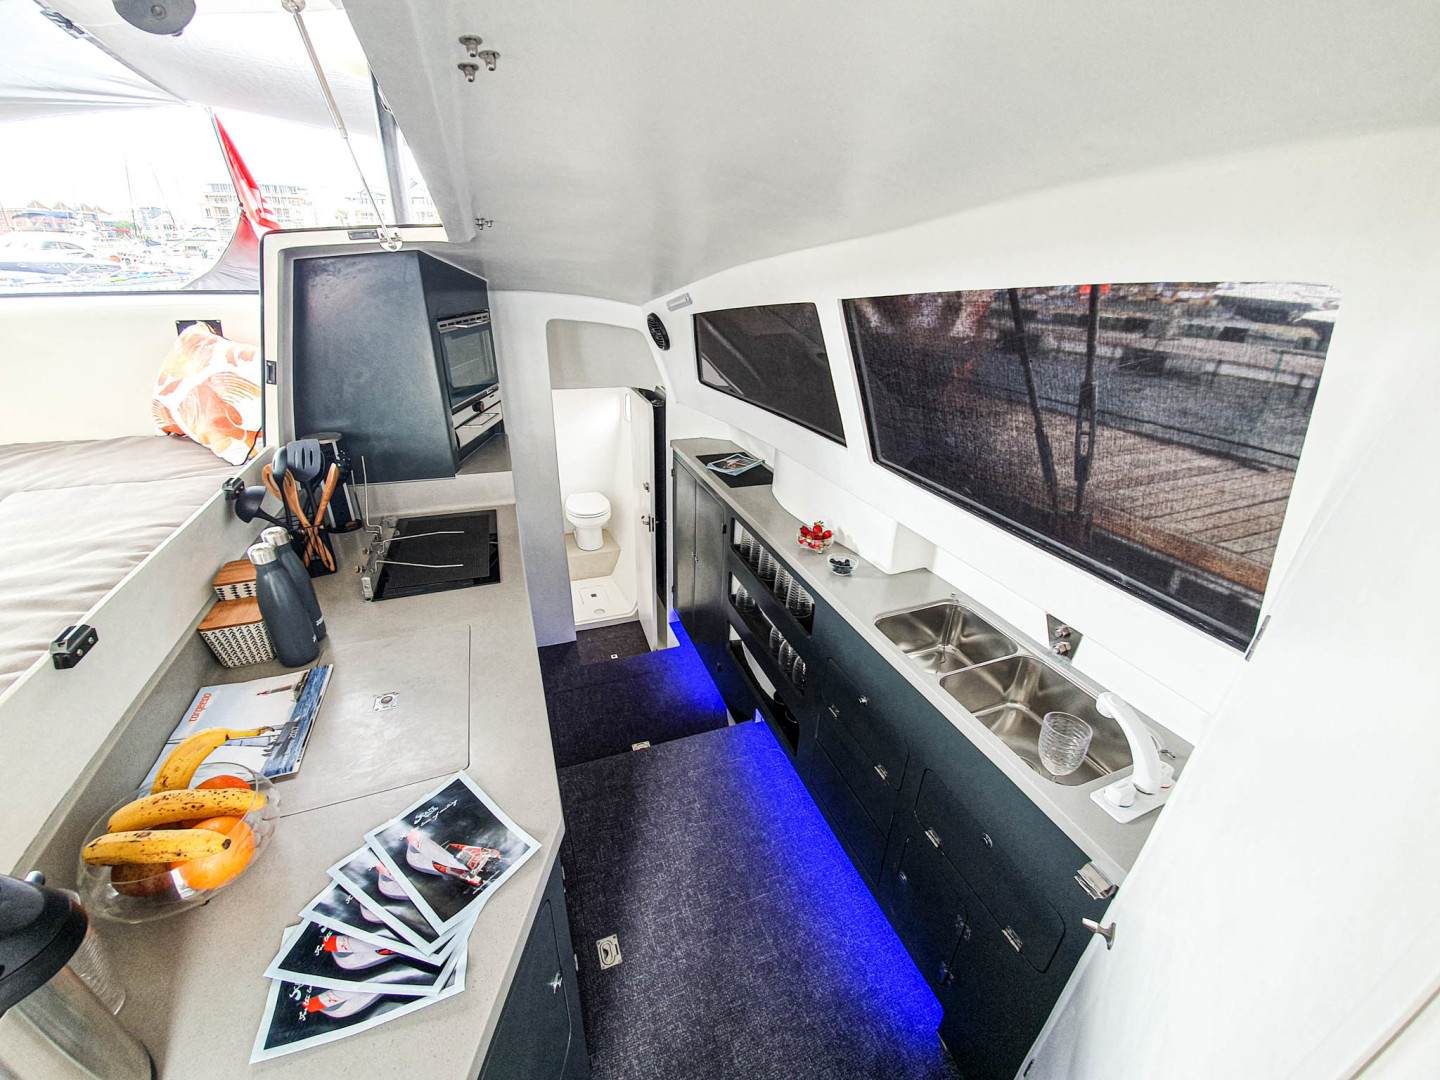 2019 Scape Yachts 40 Sport 08